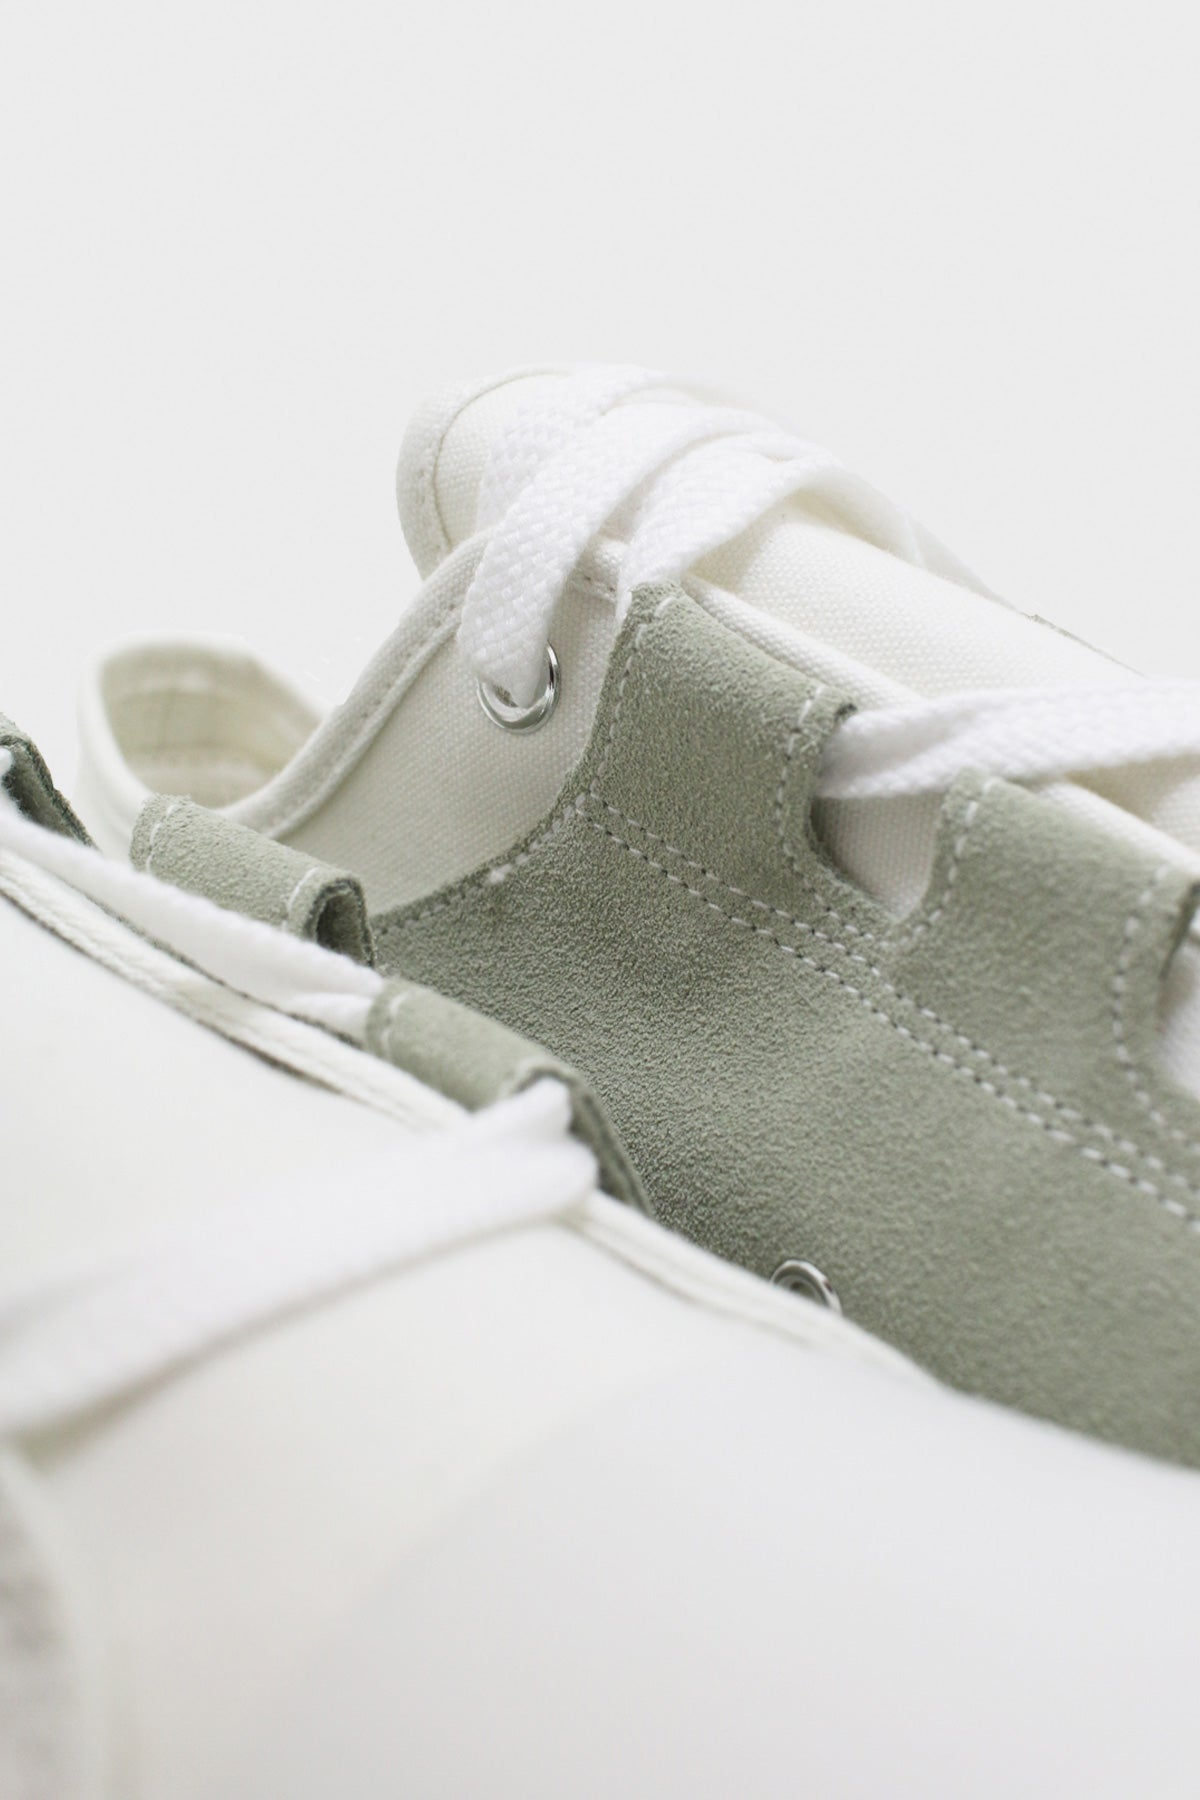 Needles - Asymmetric Ghillie Sneaker - White II - Canoe Club